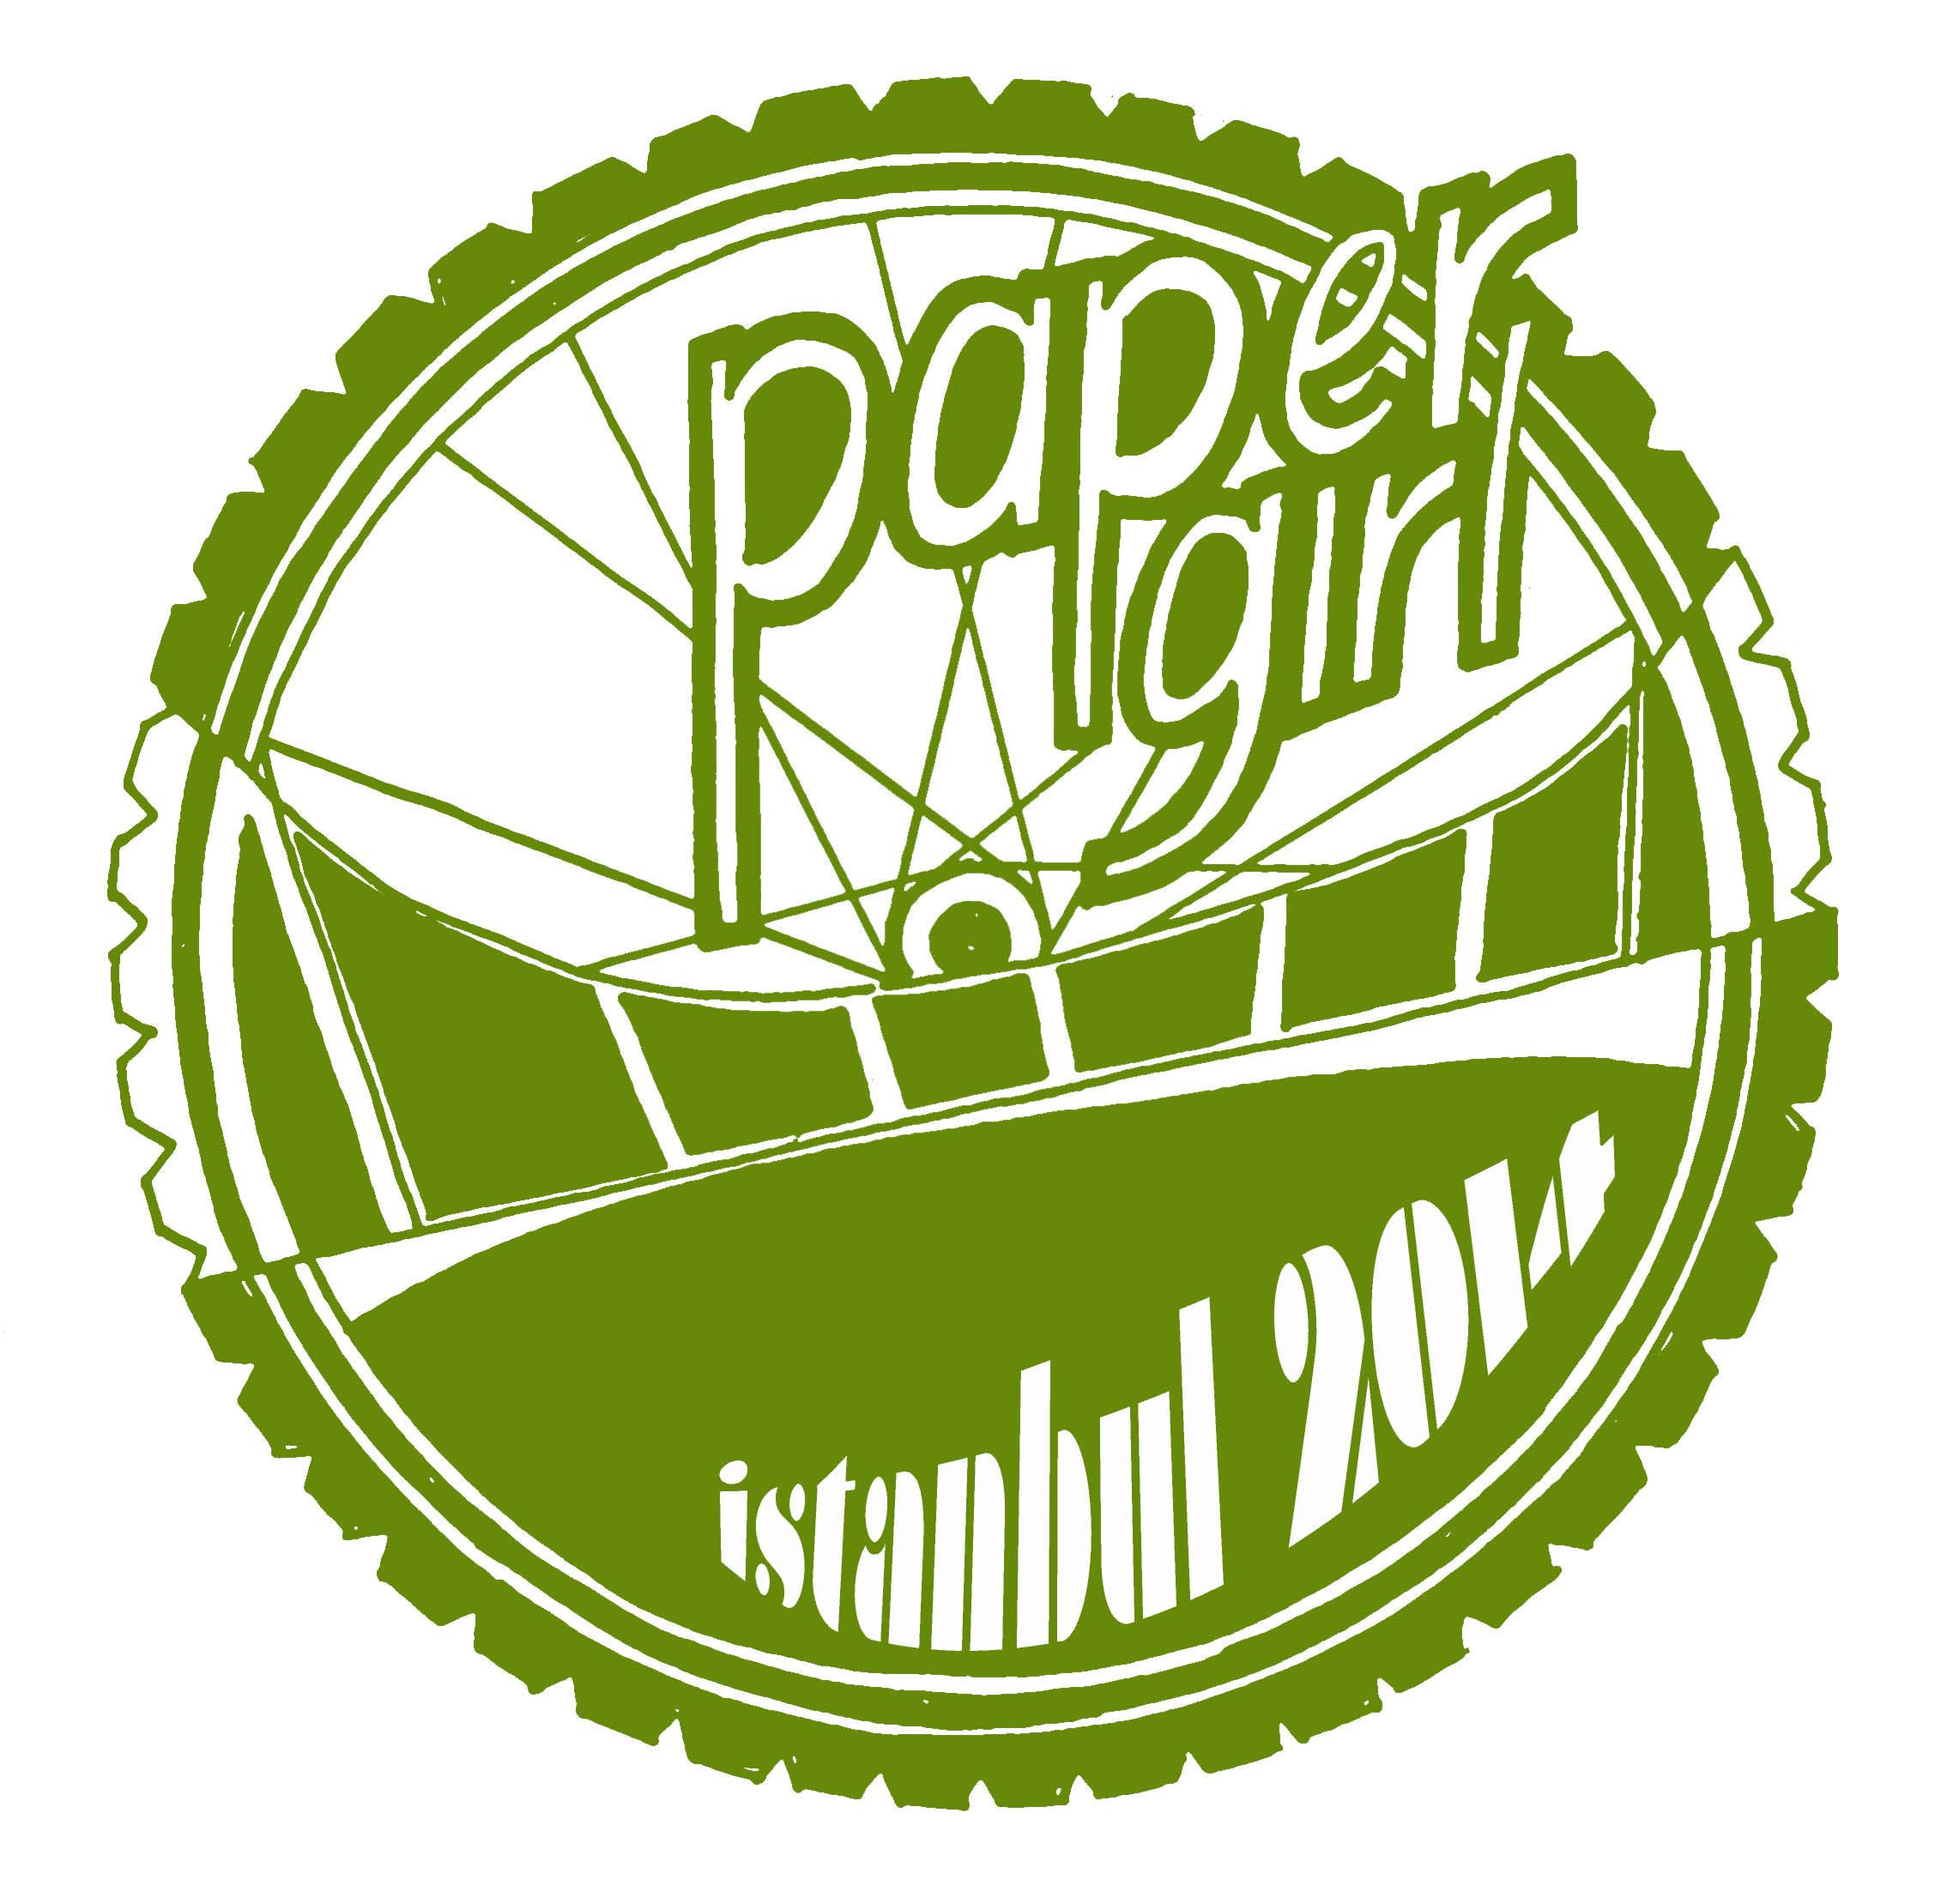 Papergirl Istanbul